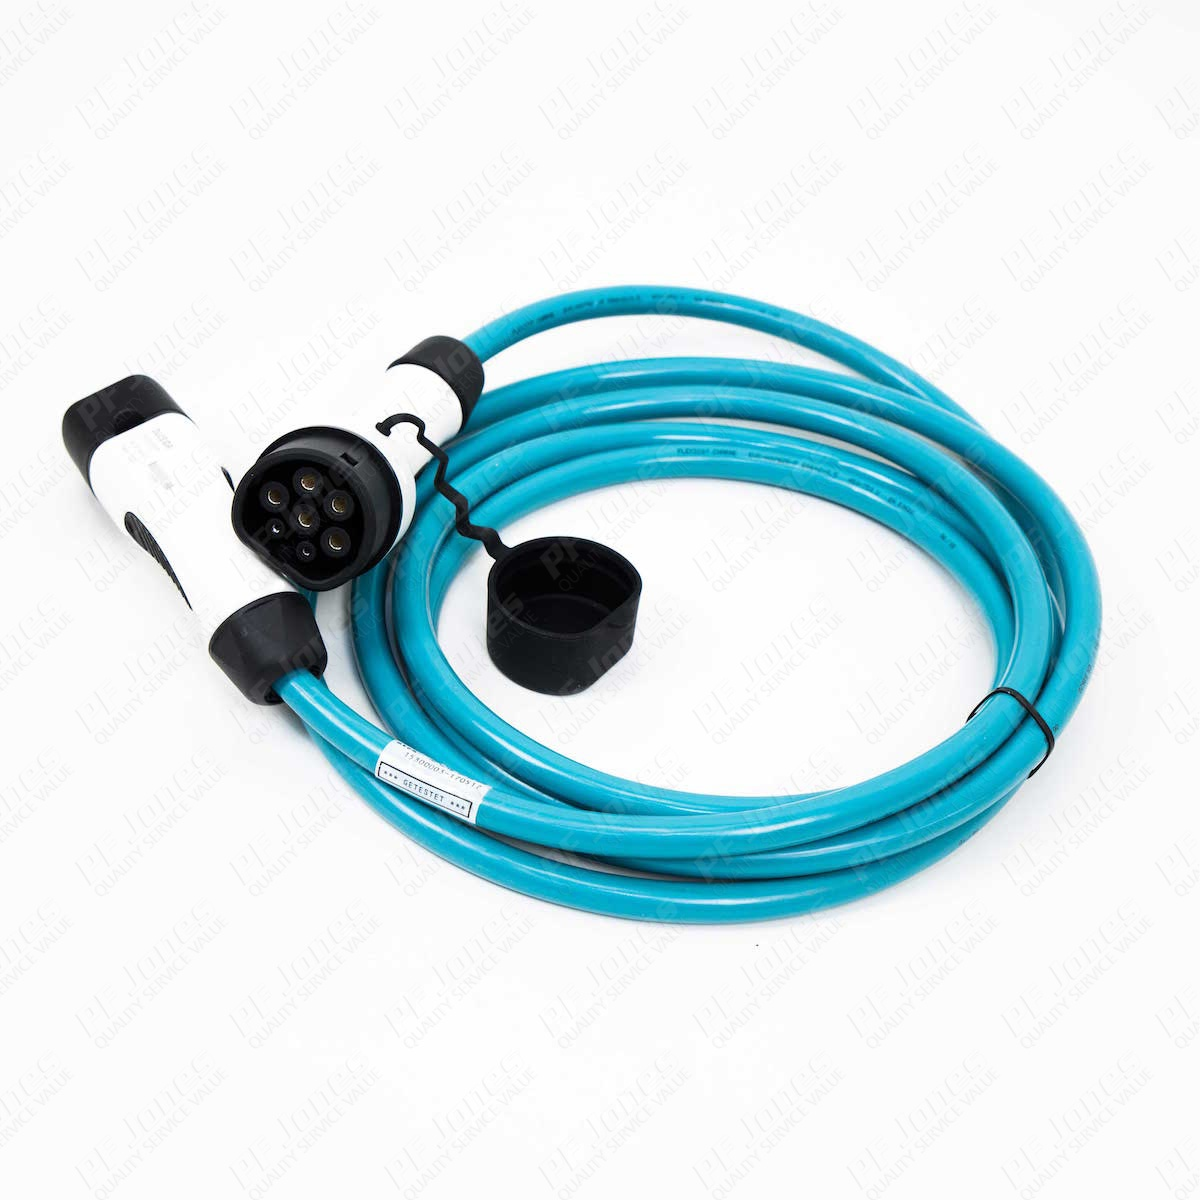 5m (Straight) 32 Amp Type 2 to Type 2 EV Charging Cable